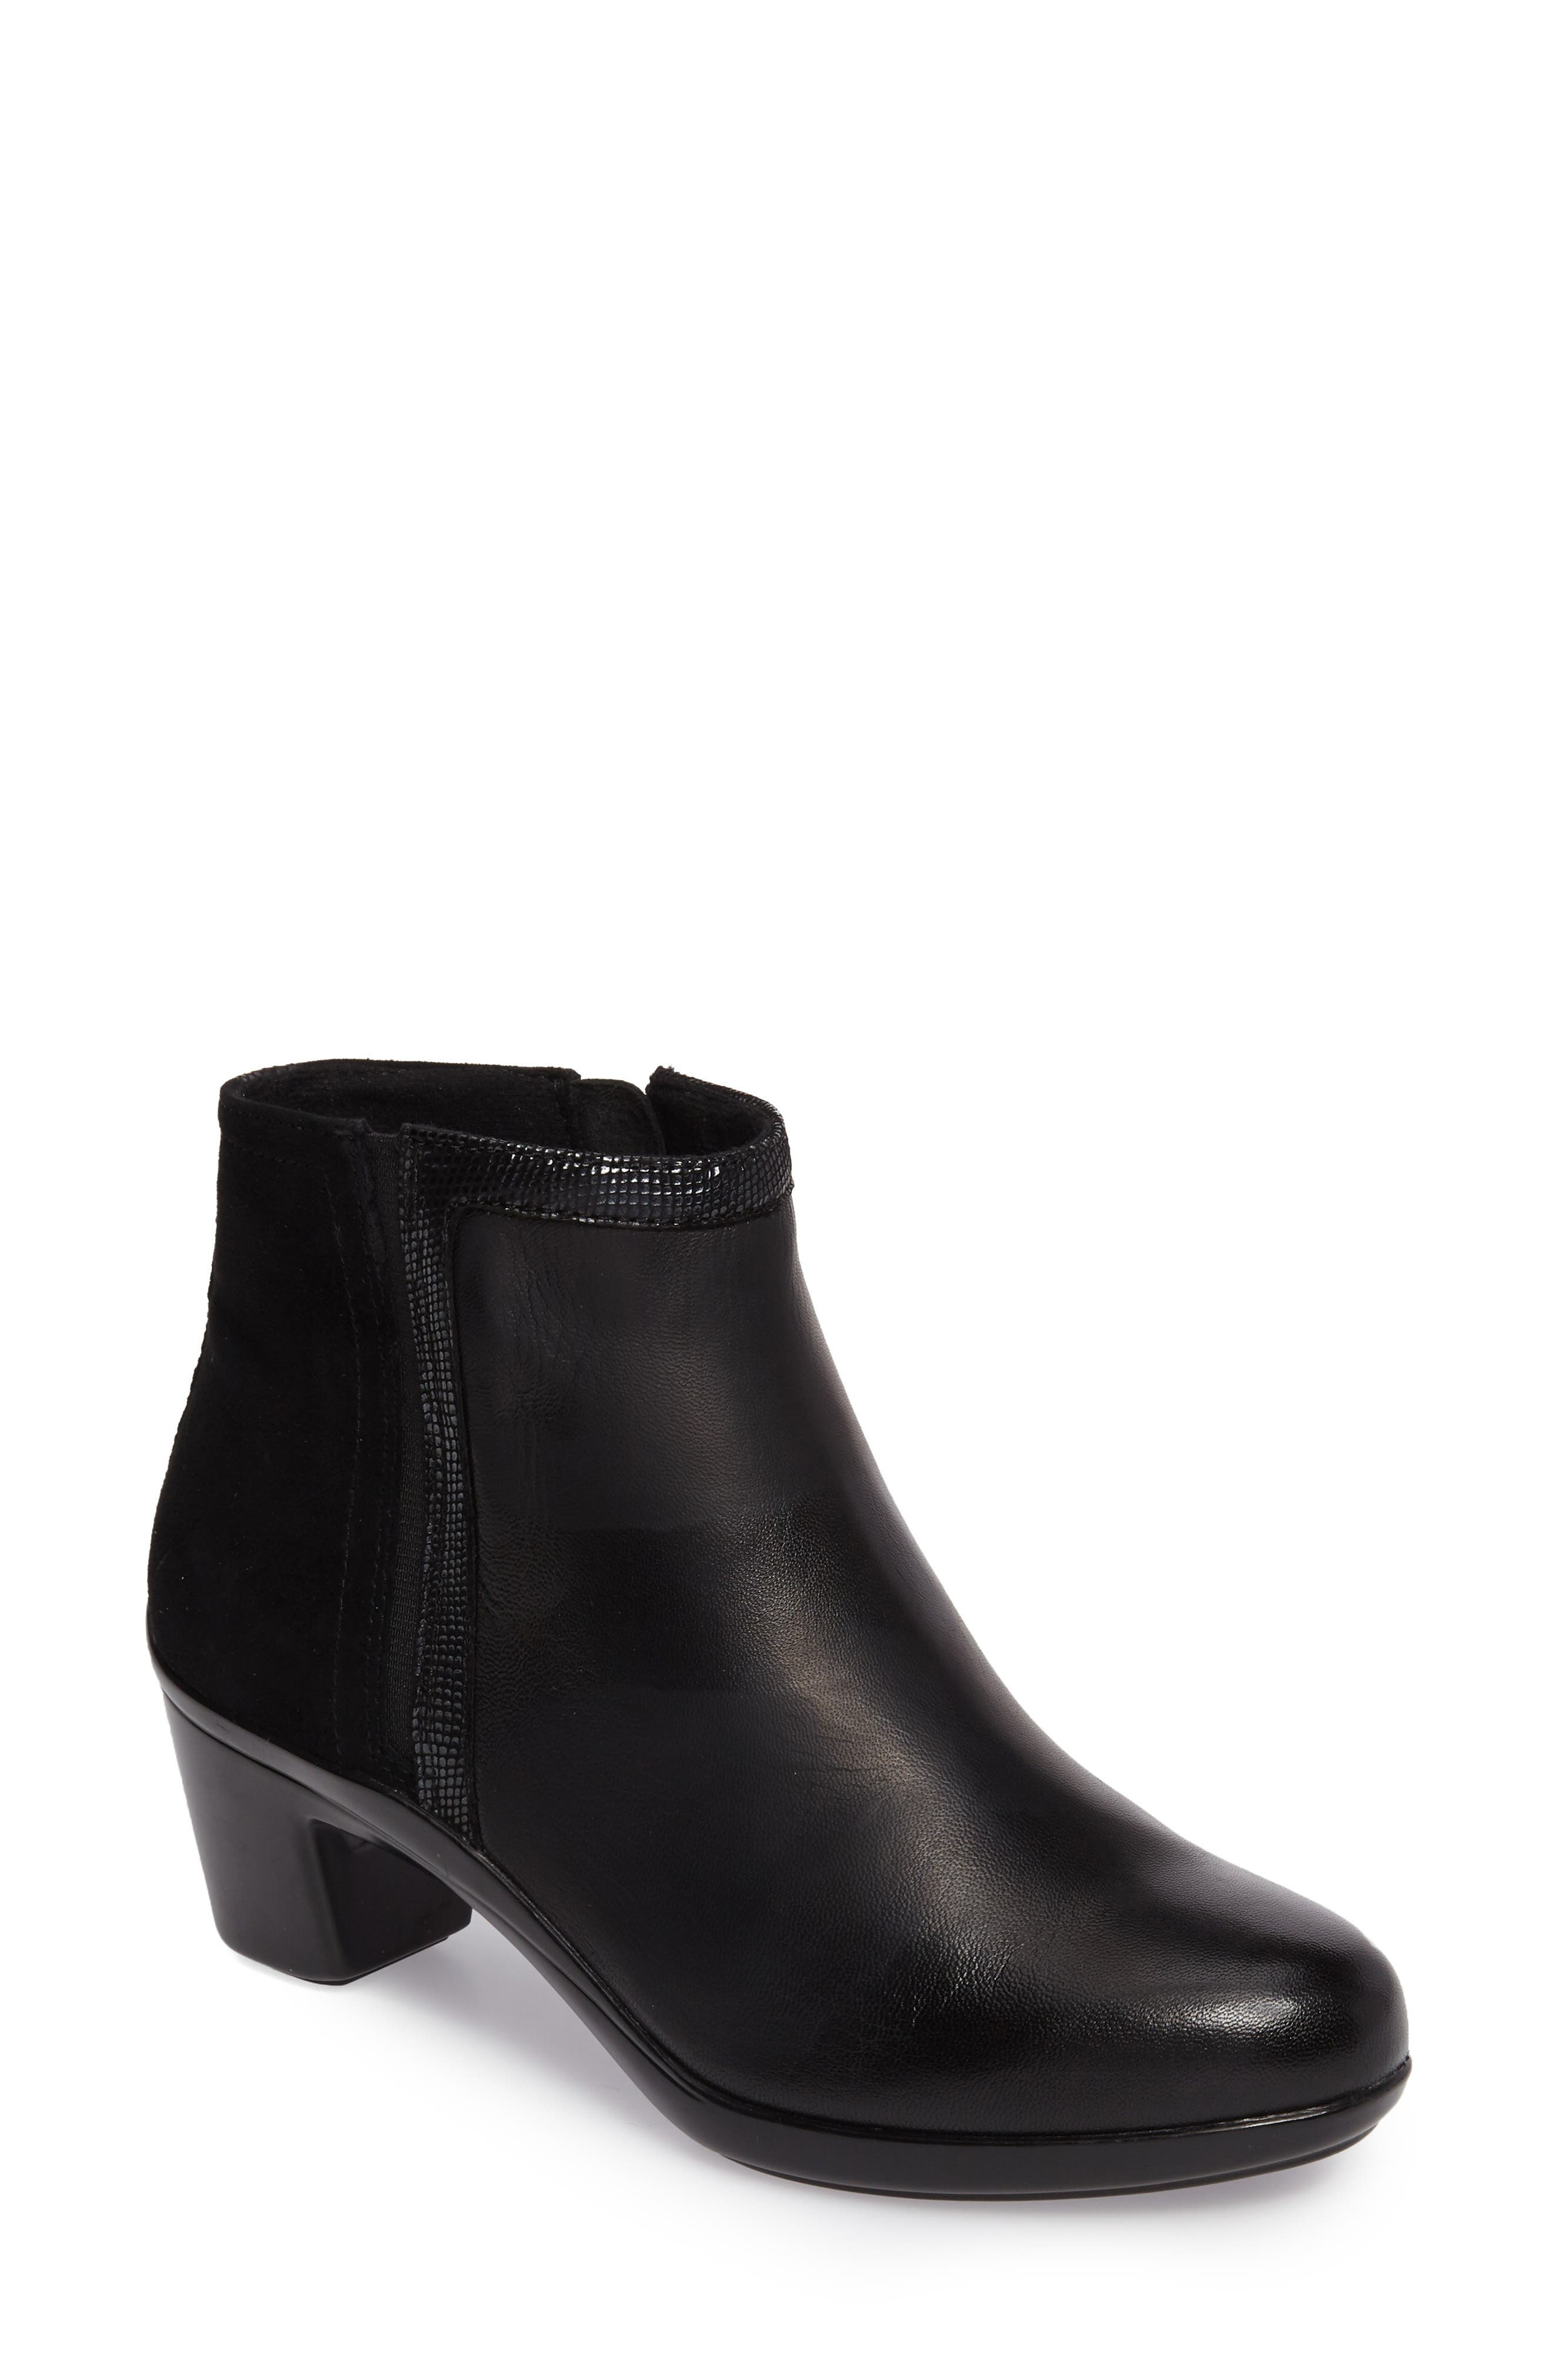 Lexee Wateproof Bootie,                         Main,                         color, Black Leather